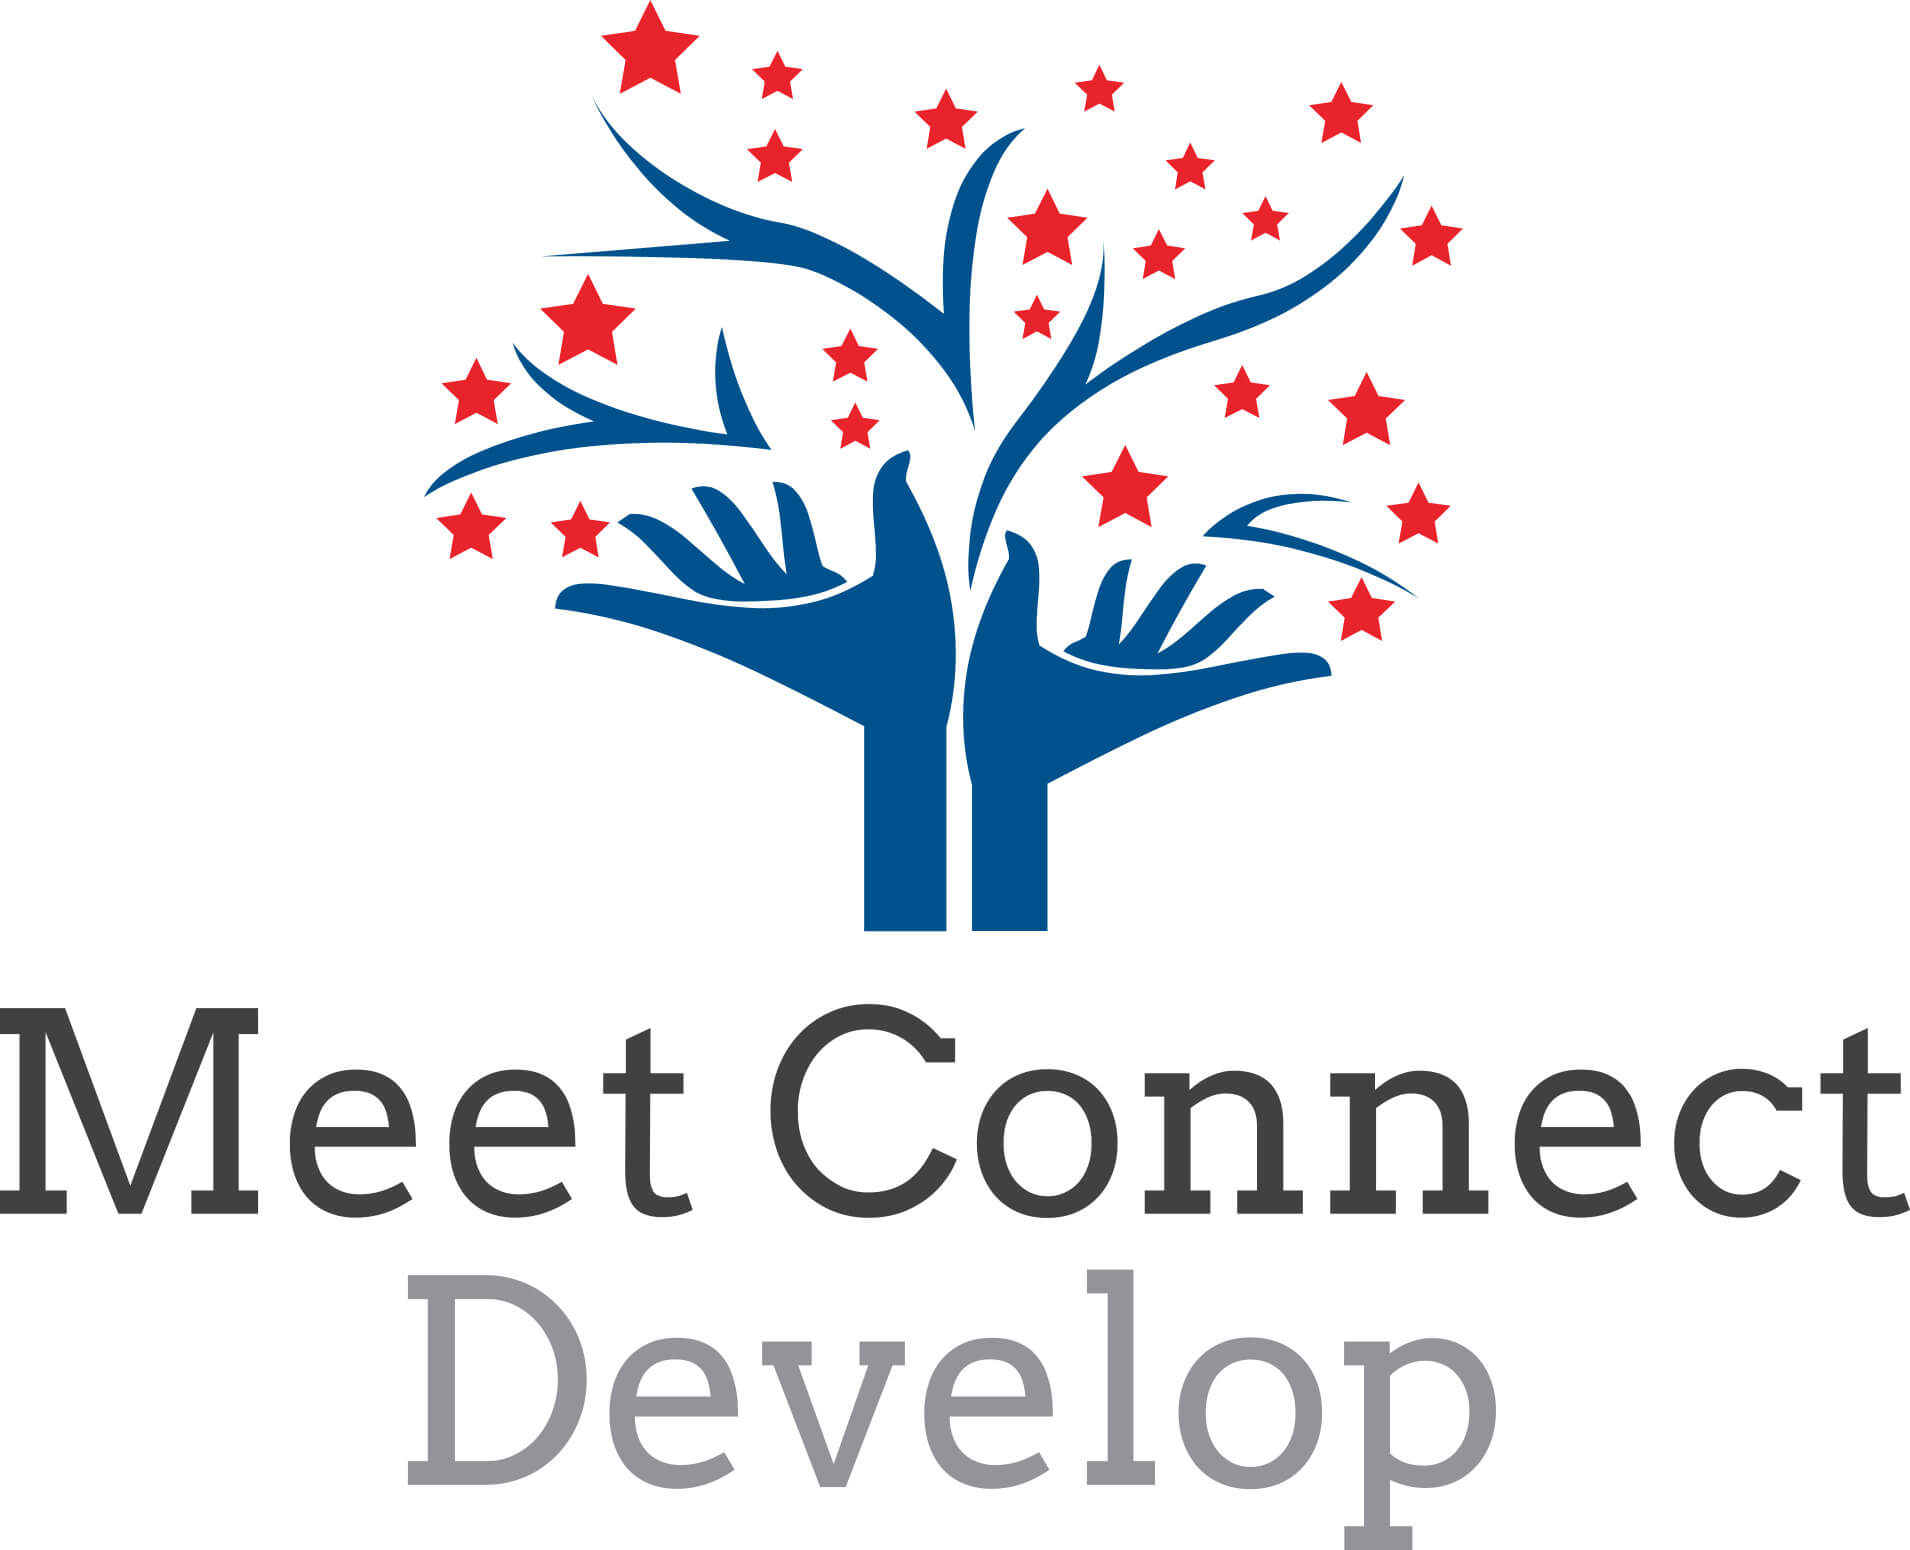 Meet Connect Develop